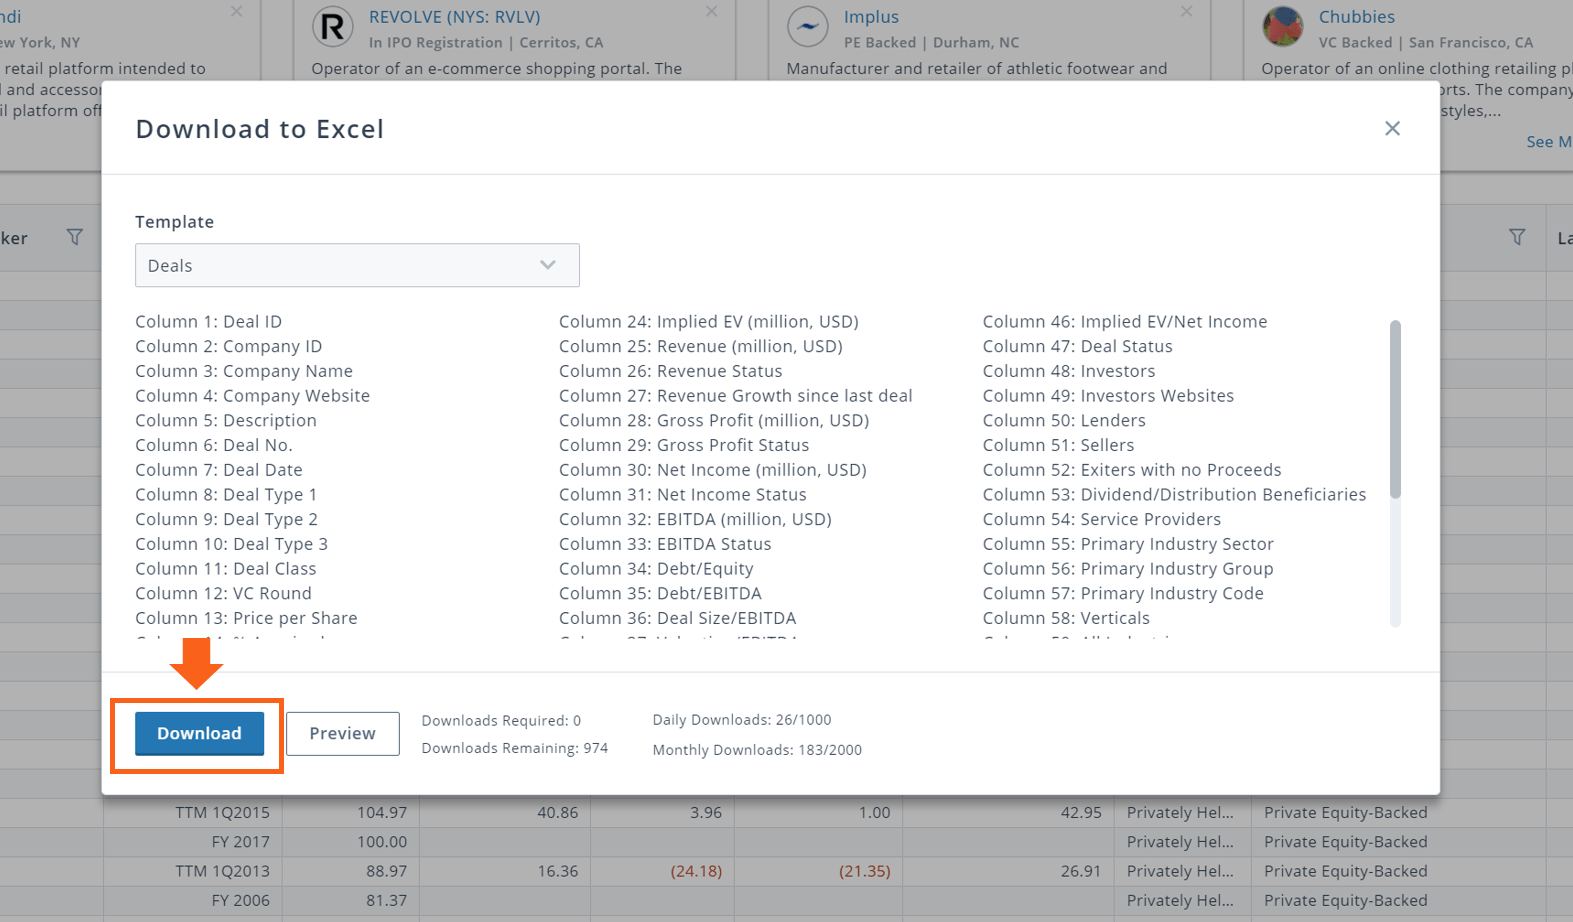 PitchBook download deals search results to excel